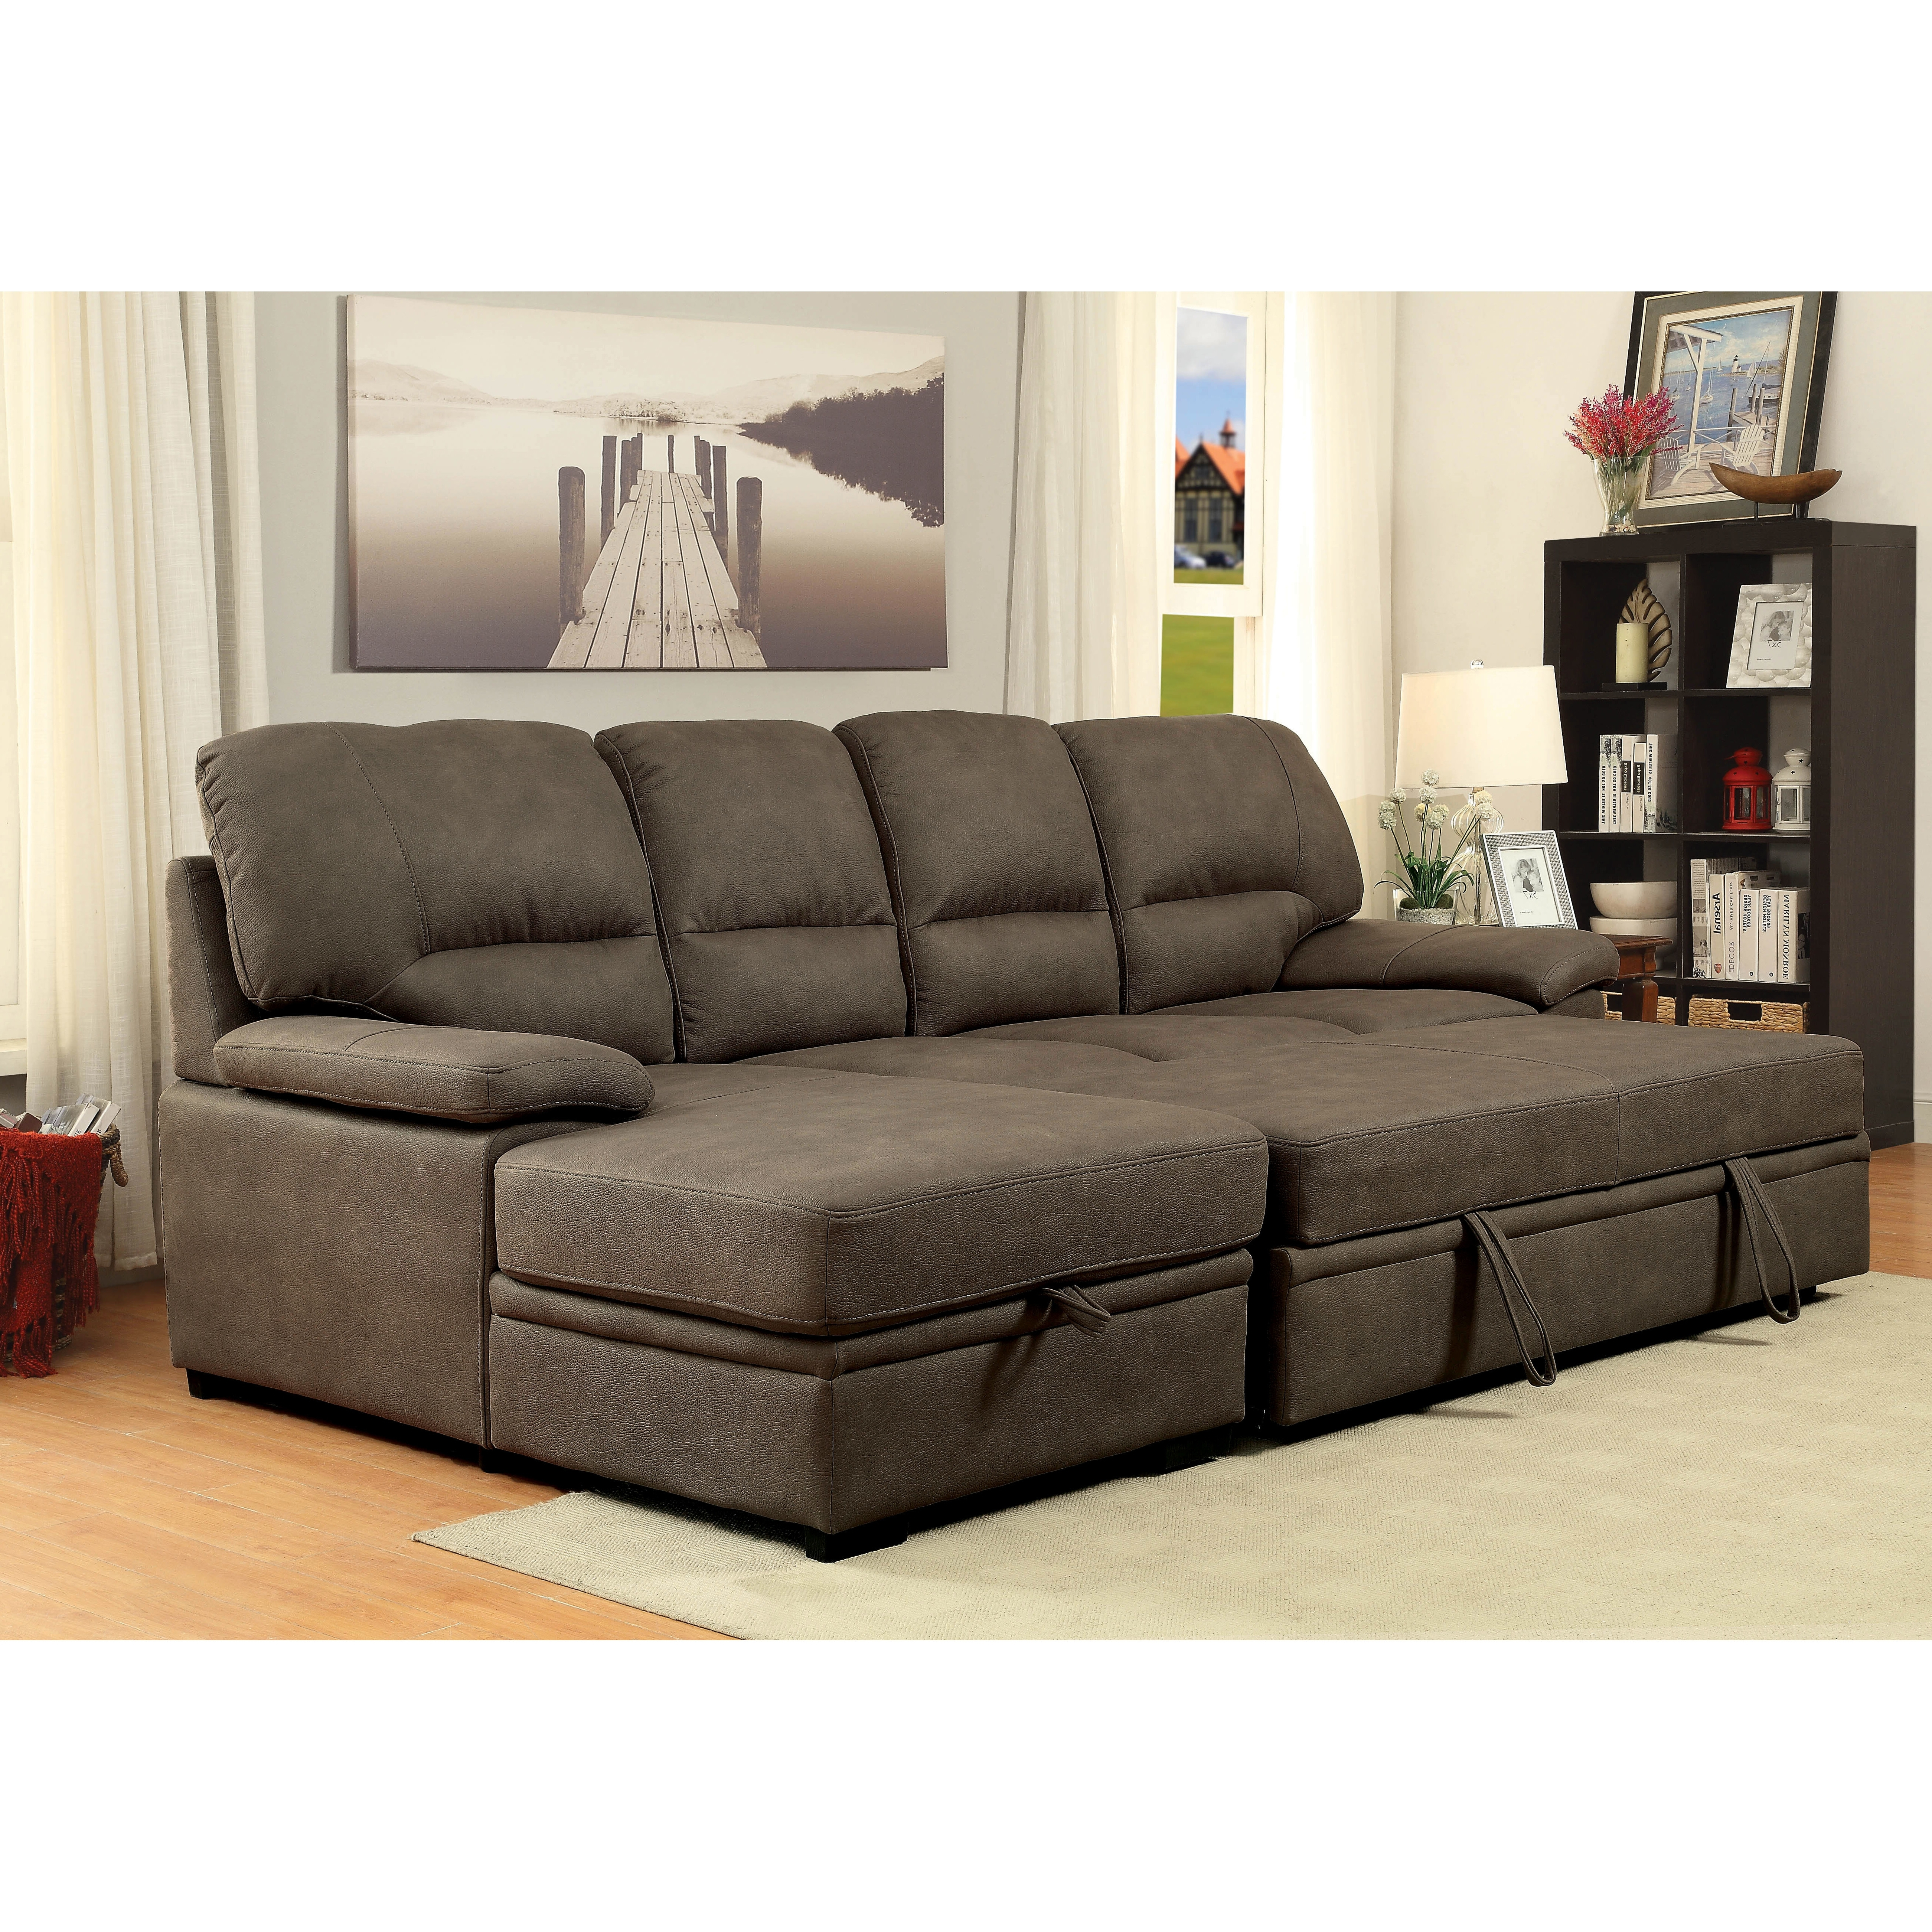 chenille furniture with sleeper contemporary sectionals of america piece convertible design subcat home ottoman garden for alina overstock sectional less sofas